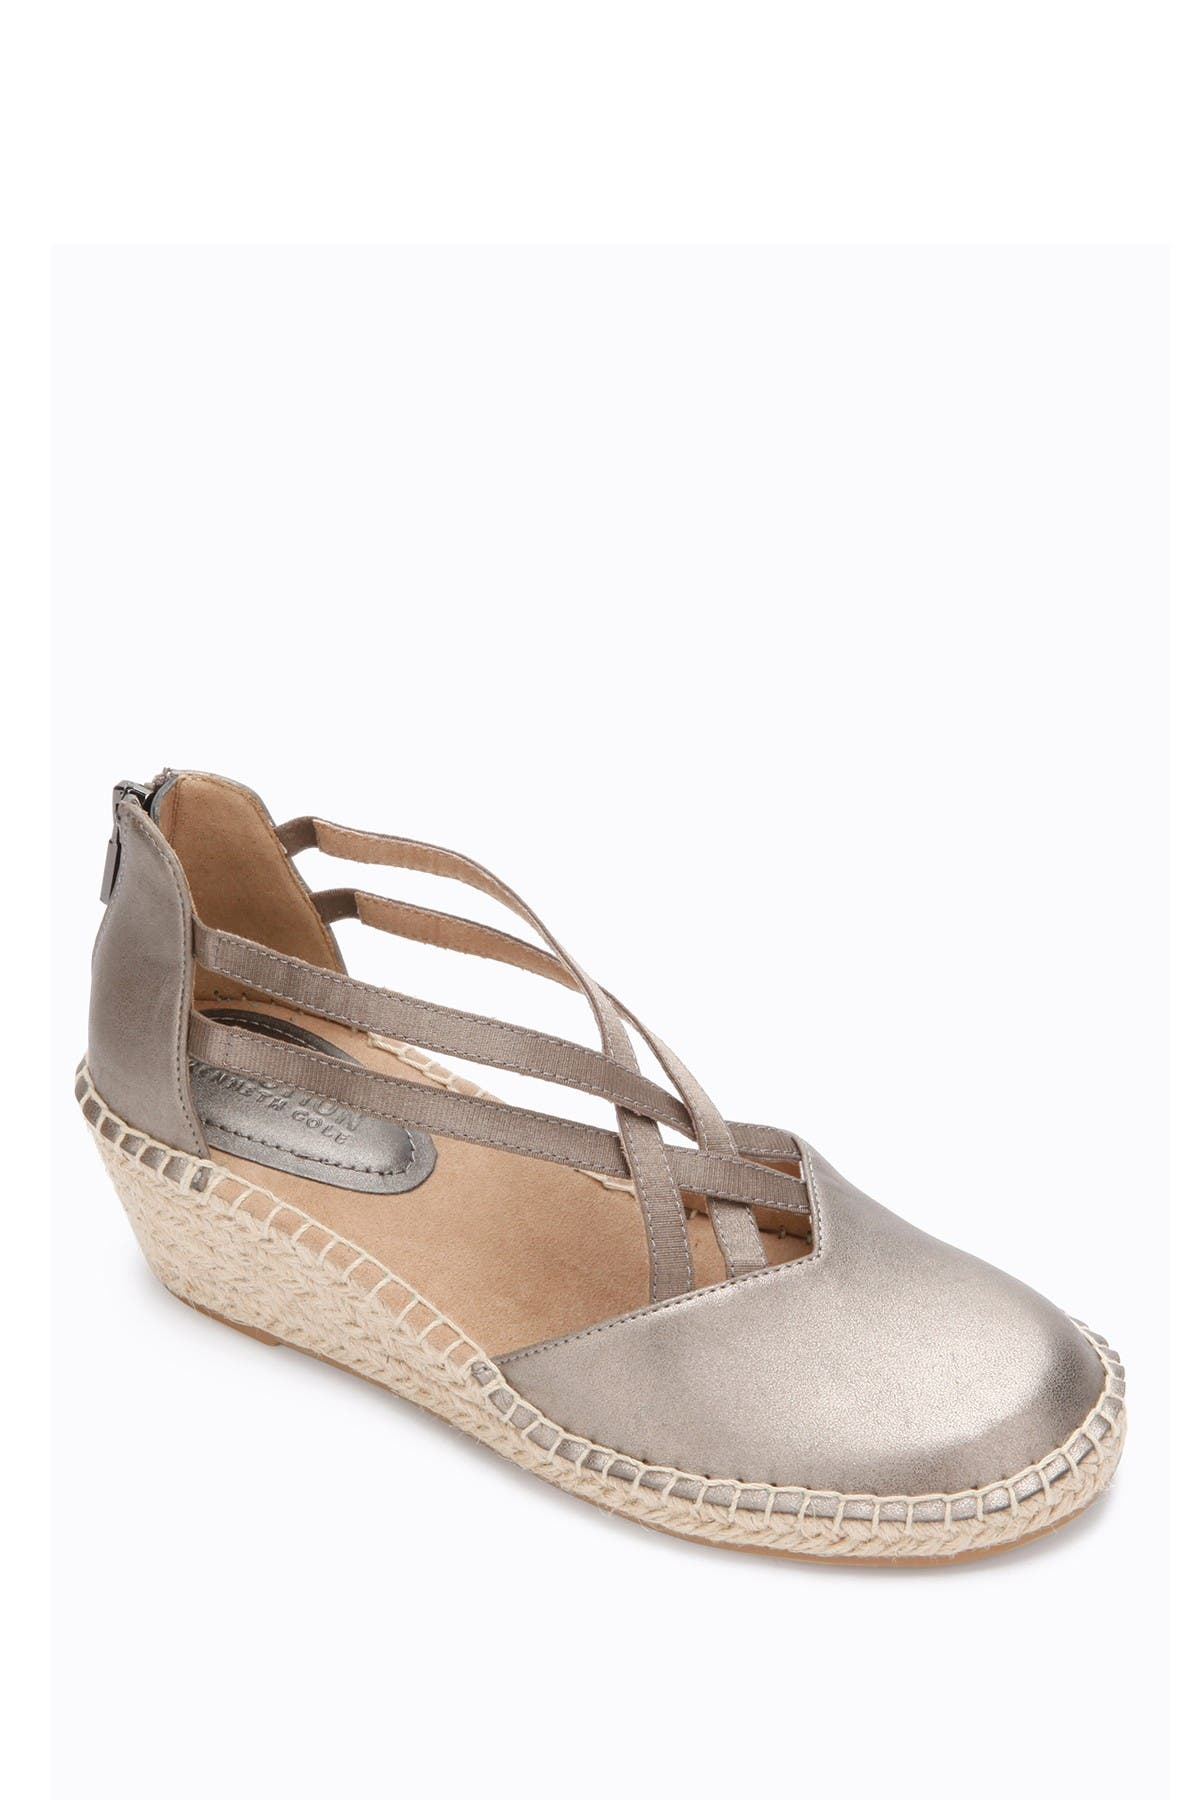 Image of Kenneth Cole Reaction Clo Espadrille Wedge Flat